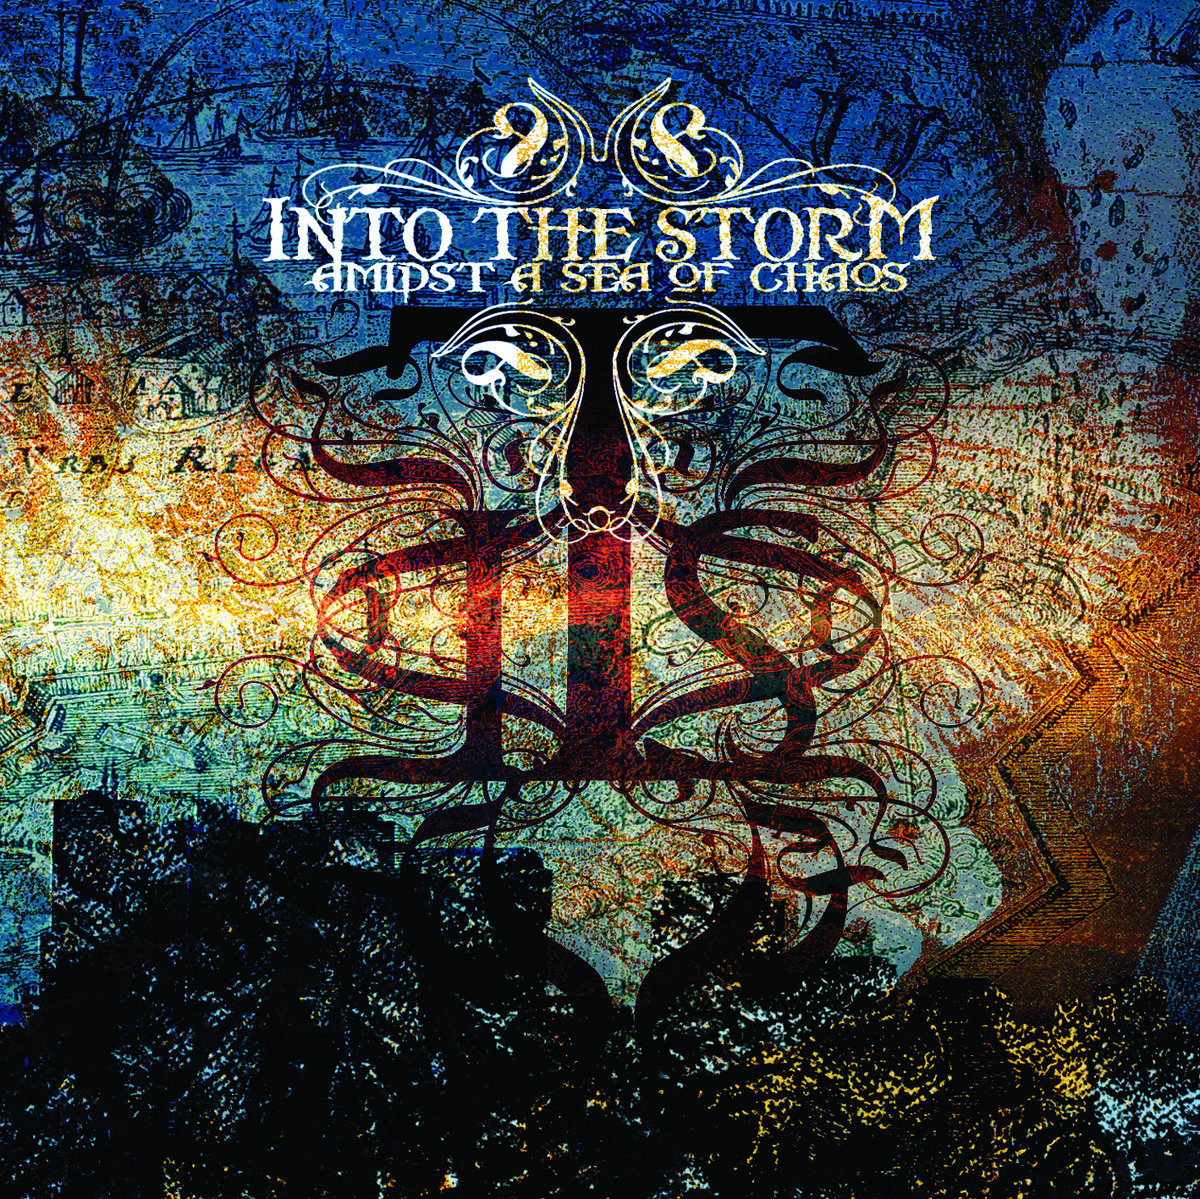 Amidst a sea of chaos into the storm by into the storm malvernweather Gallery